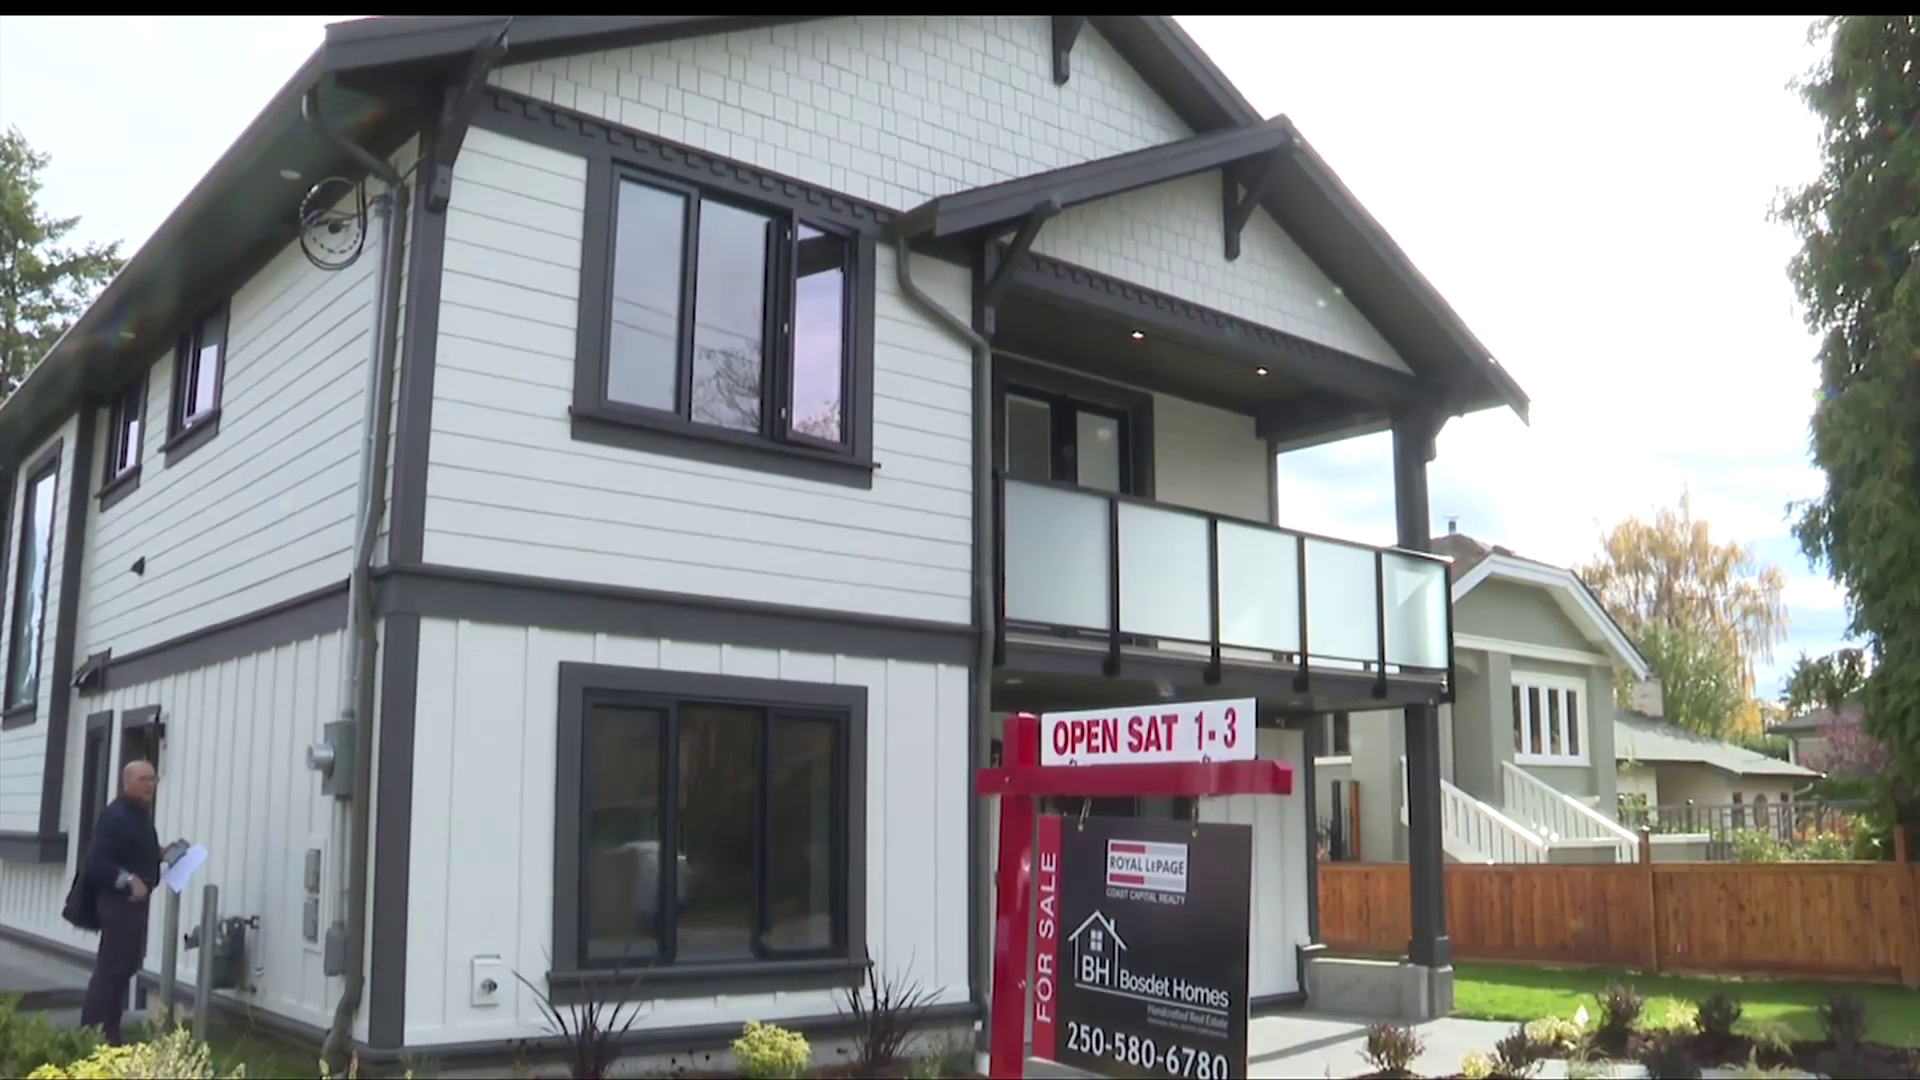 Greater Victoria house prices continue to rise, low inventory and high demand to blame